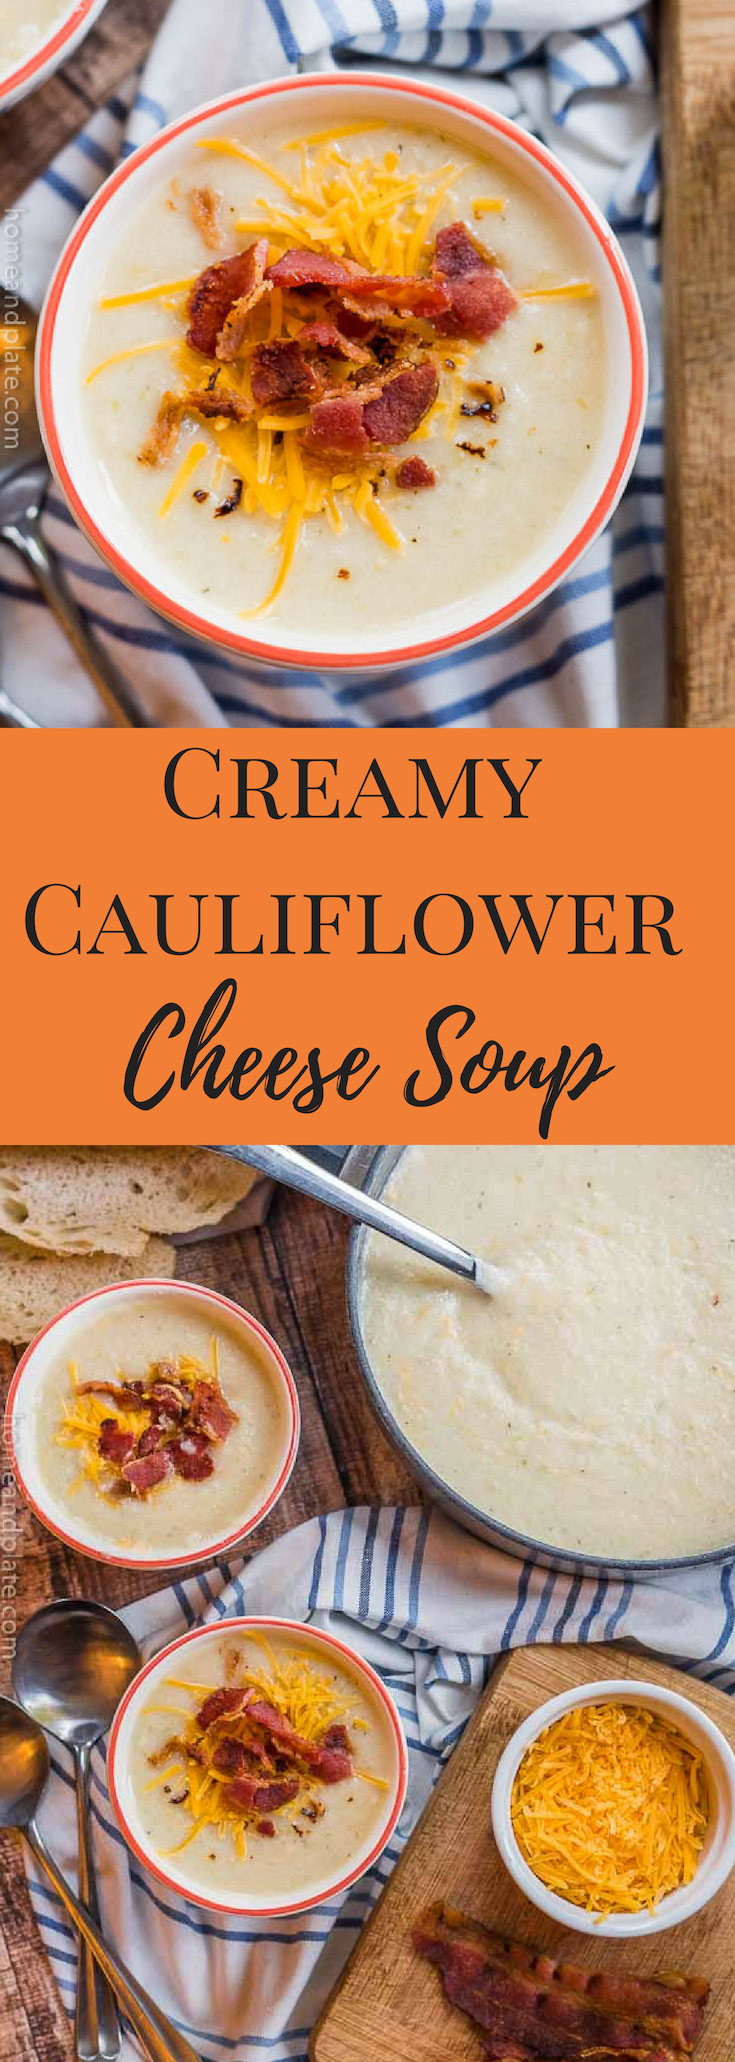 Creamy Cauliflower Cheese Soup | This loaded creamy cauliflower cheese soup is a healthy option that is full of flavor. #keto #lowcarb #cauliflowersoup